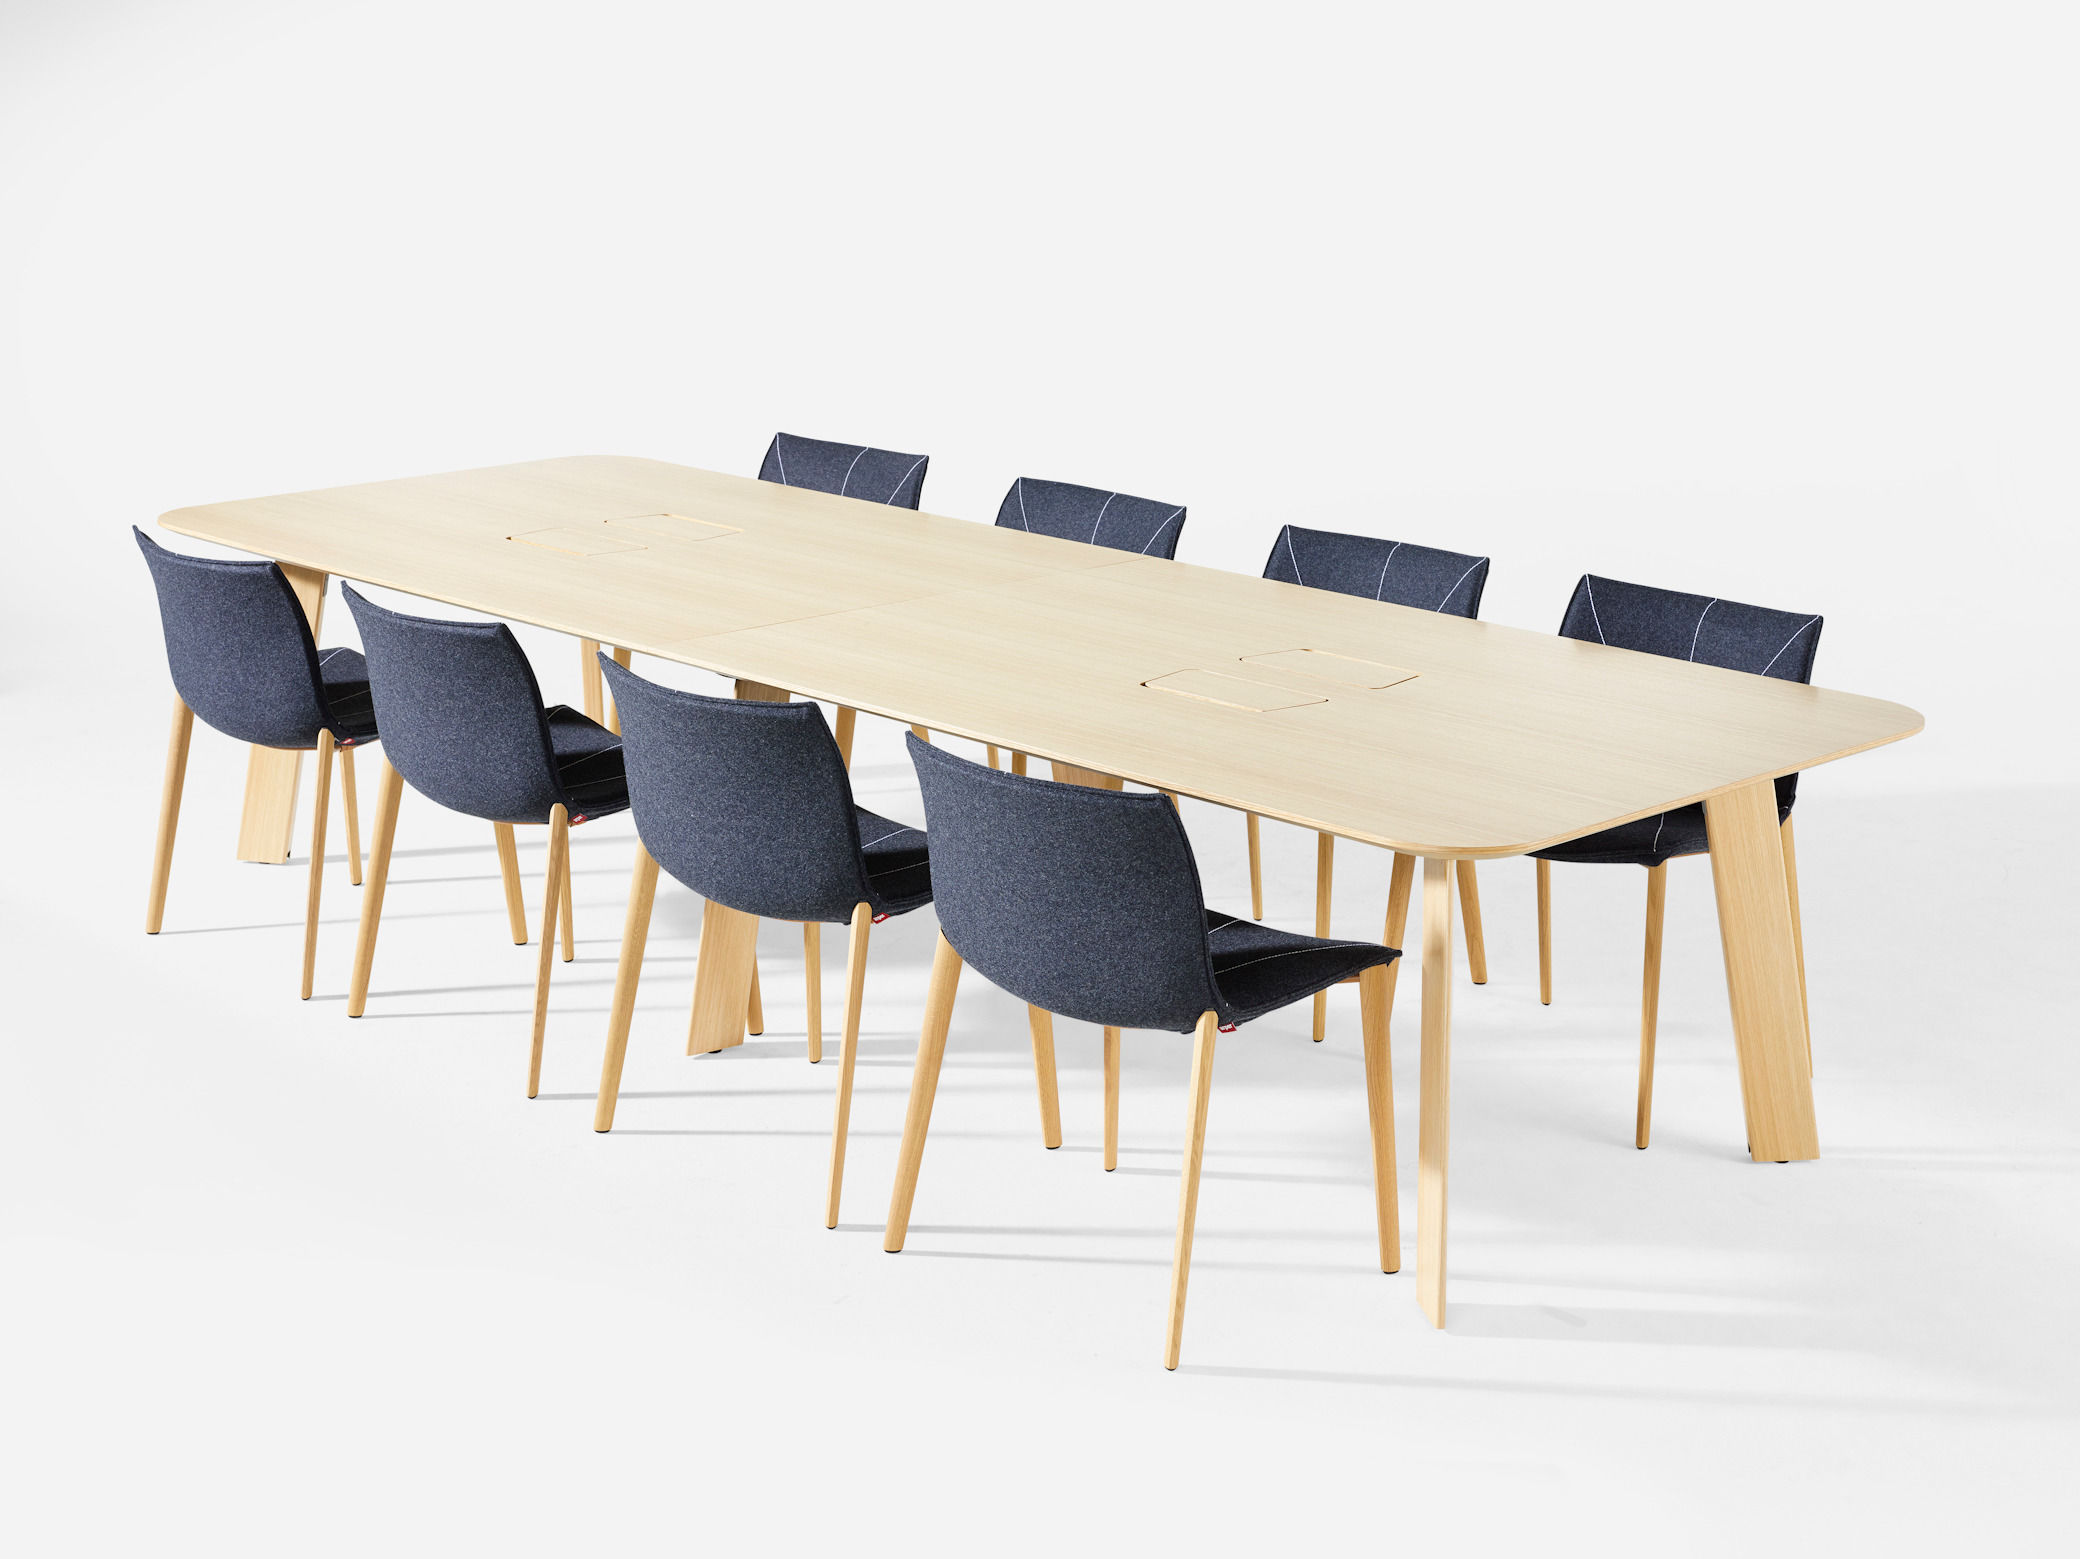 Blade Table Stylecraft Meeting Table Dining Table